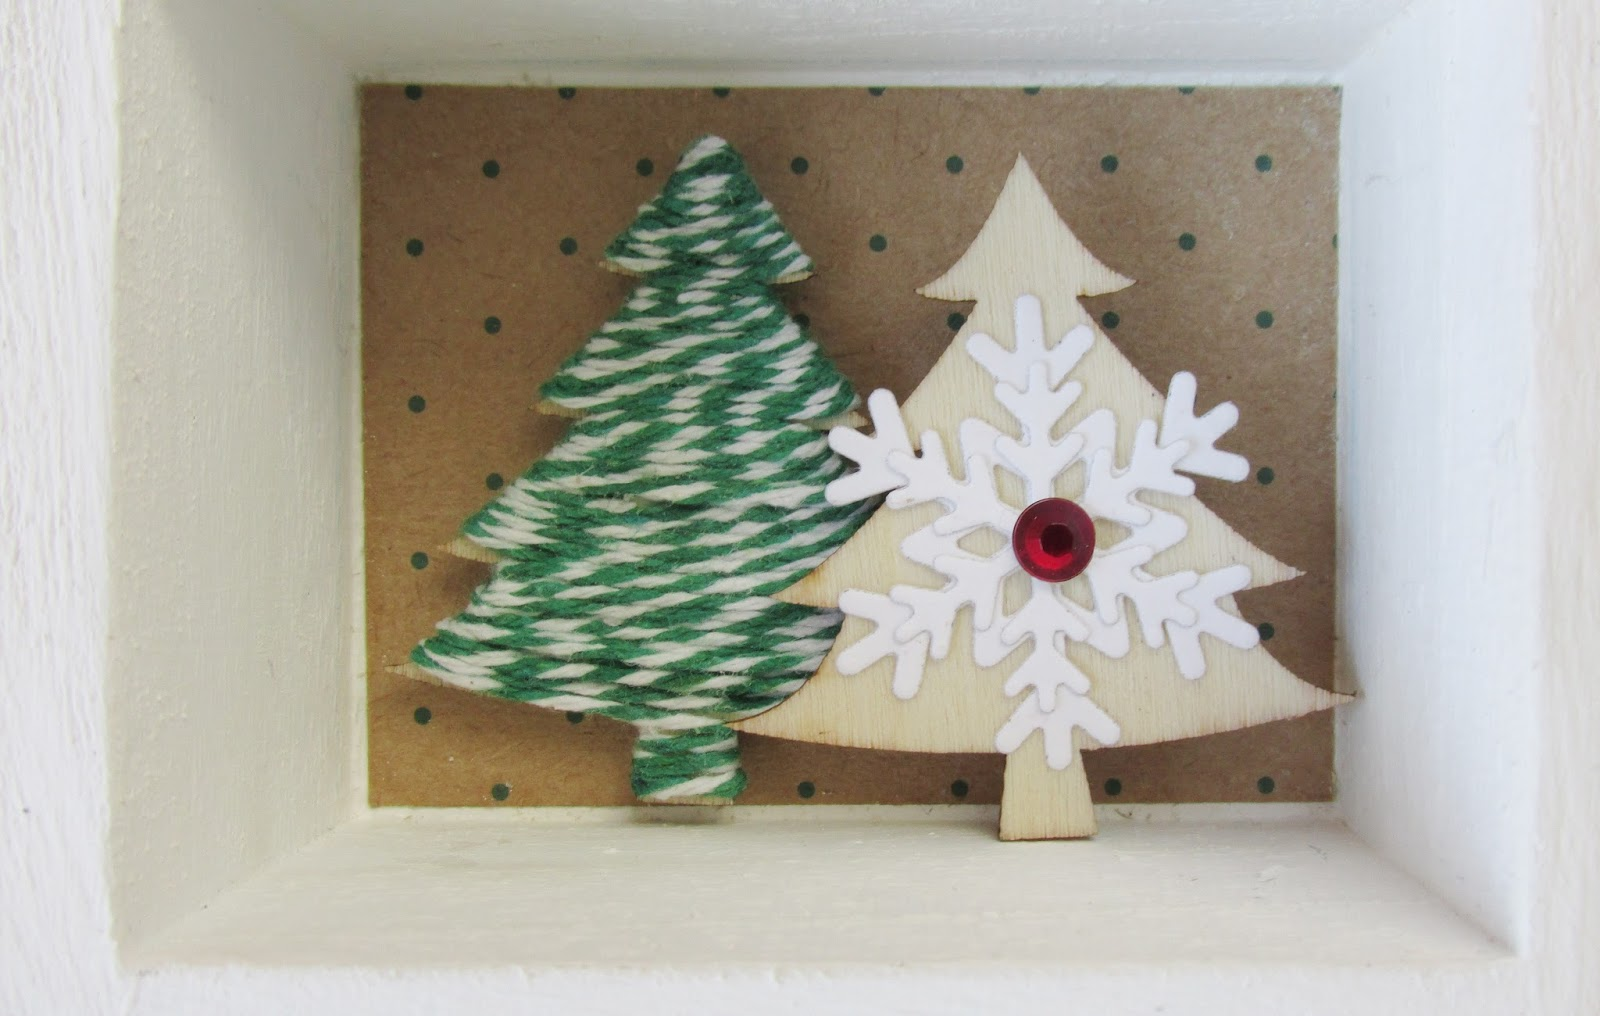 Wrap Green Twine Around A Wooden Christmas Tree Adding Spots Of Glue To Hold It Firmly In PlaceGlue This The Left Top Shelf